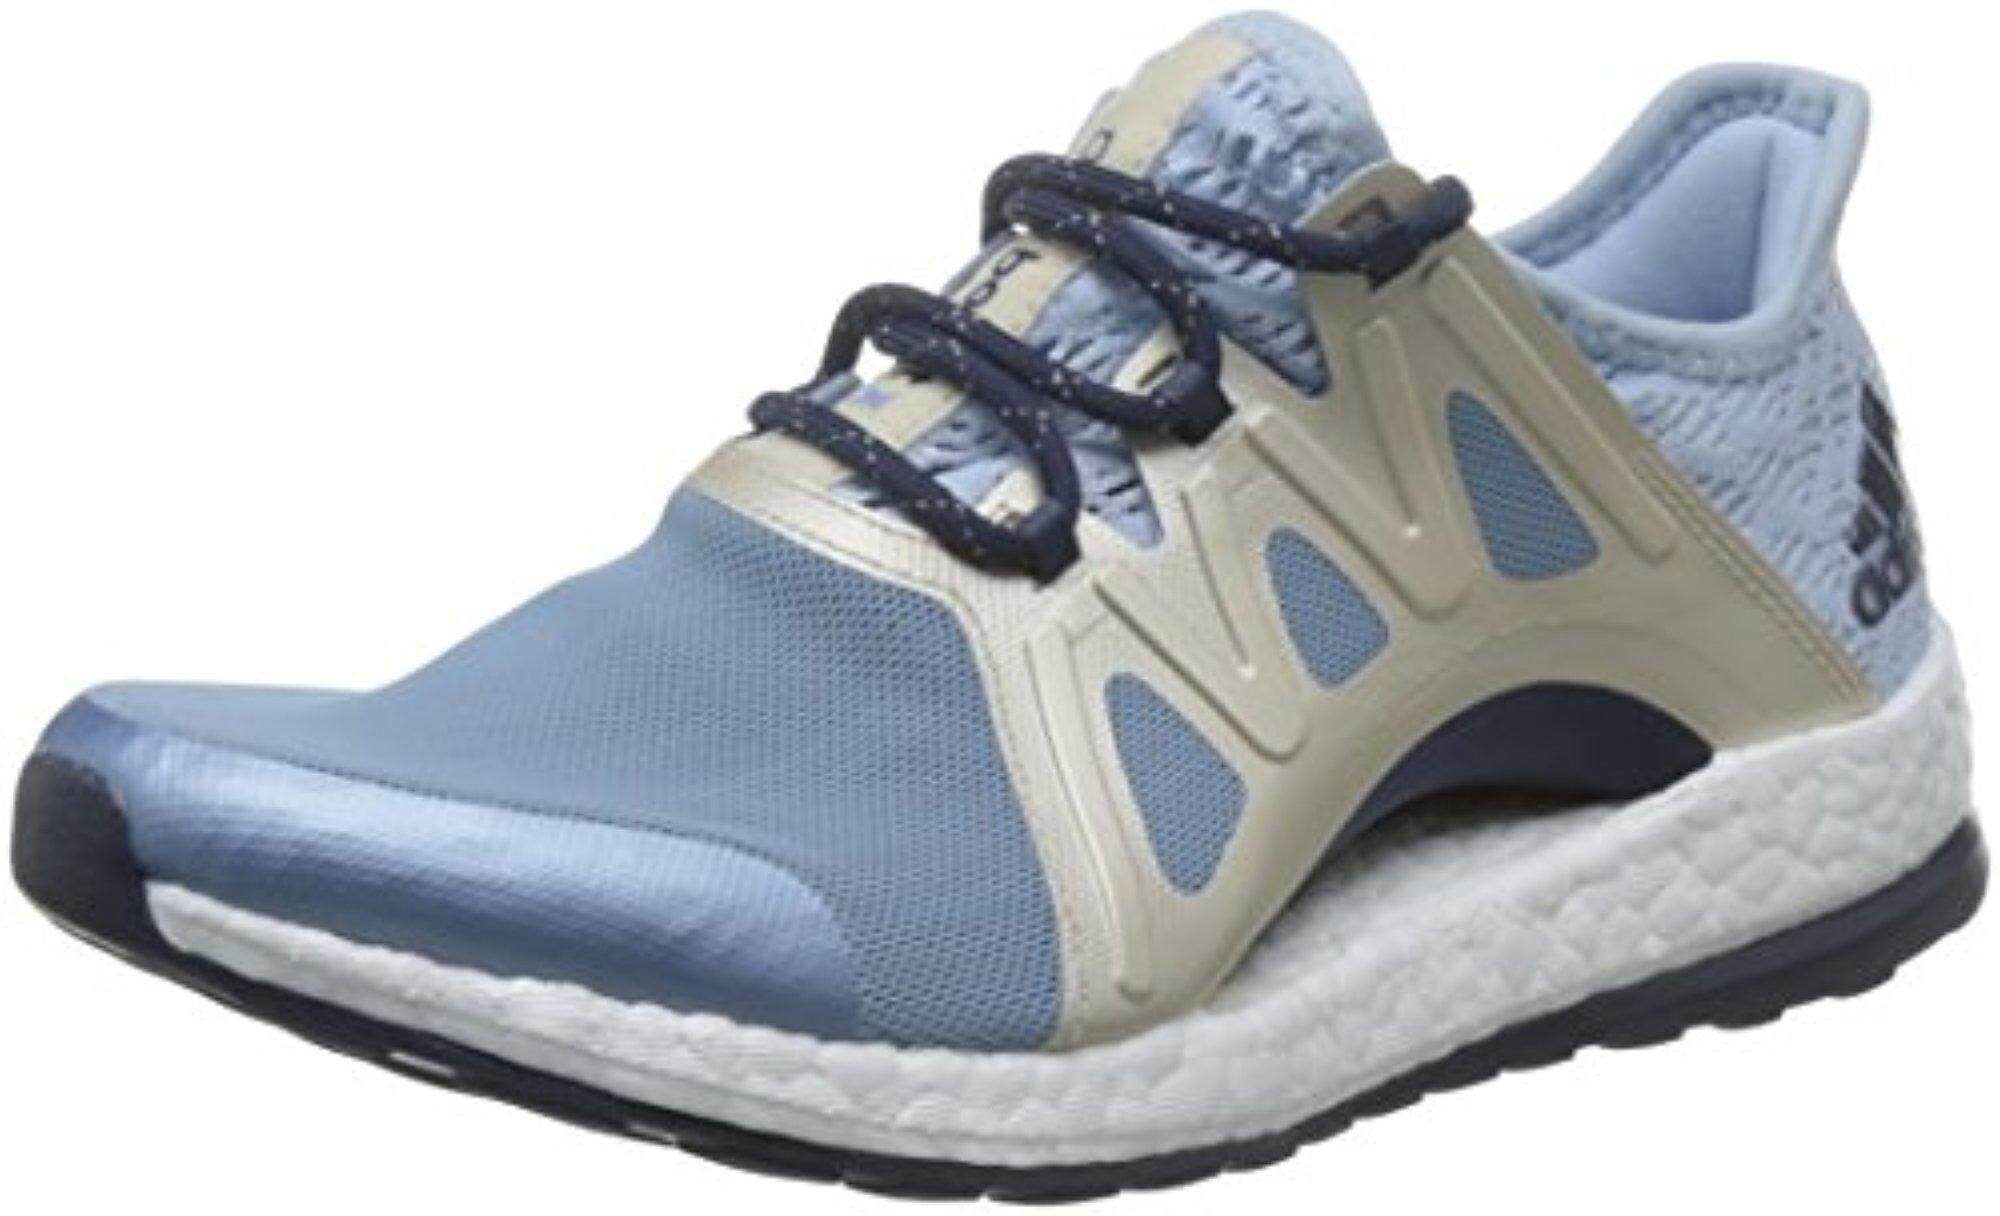 watch df7a5 e31cd adidas Women s Pureboost Xpose Clima Tacblu, Easblu and Linen Running Shoes  - 4 UK